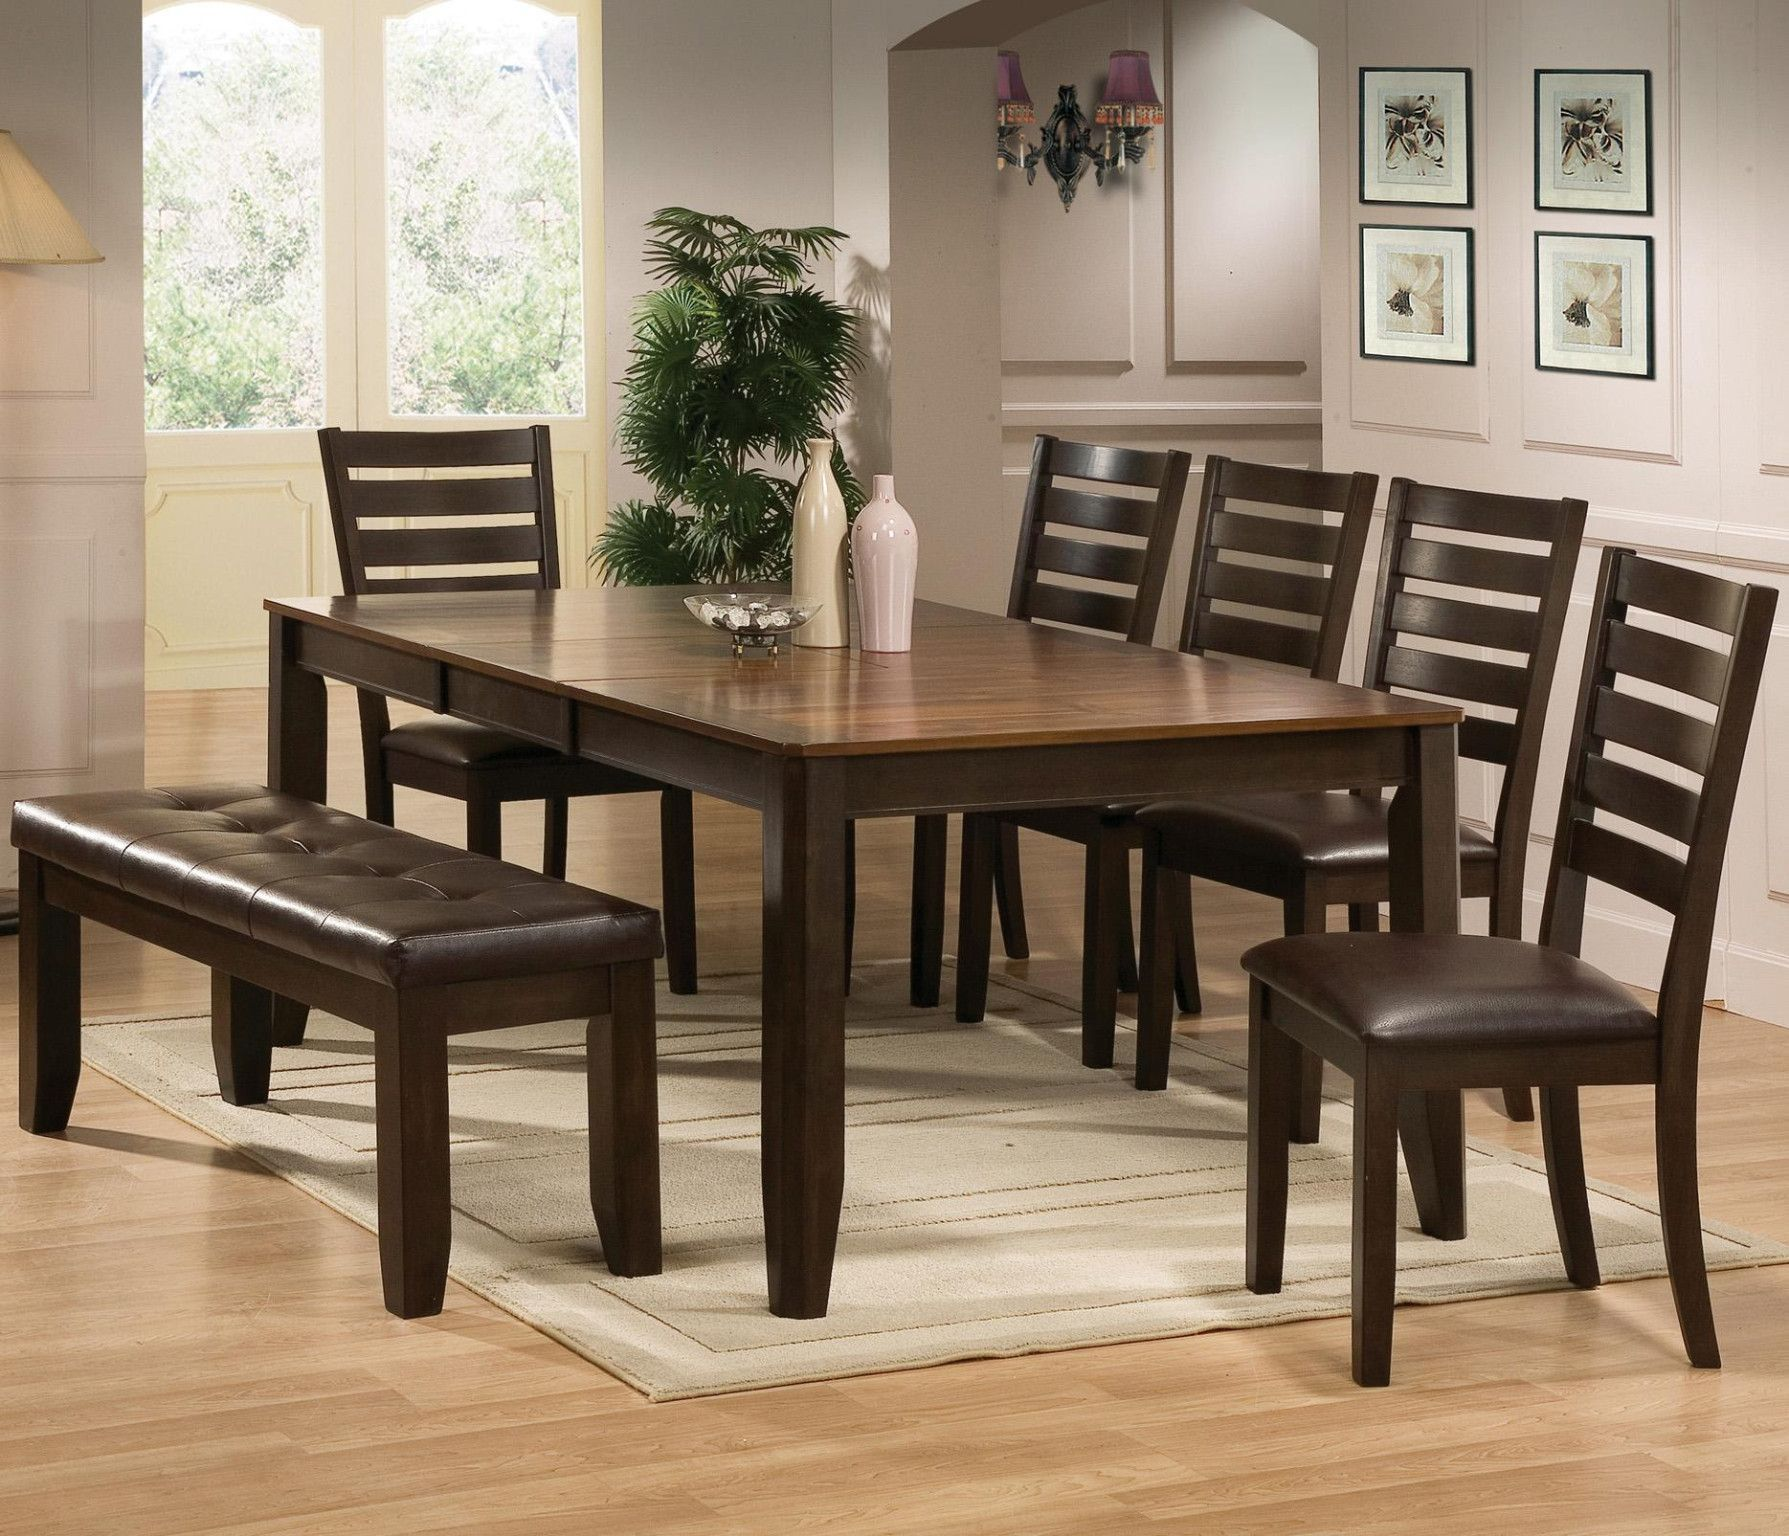 Elliott 5 Piece Dinette Table And 4 Chairs 64900 39900